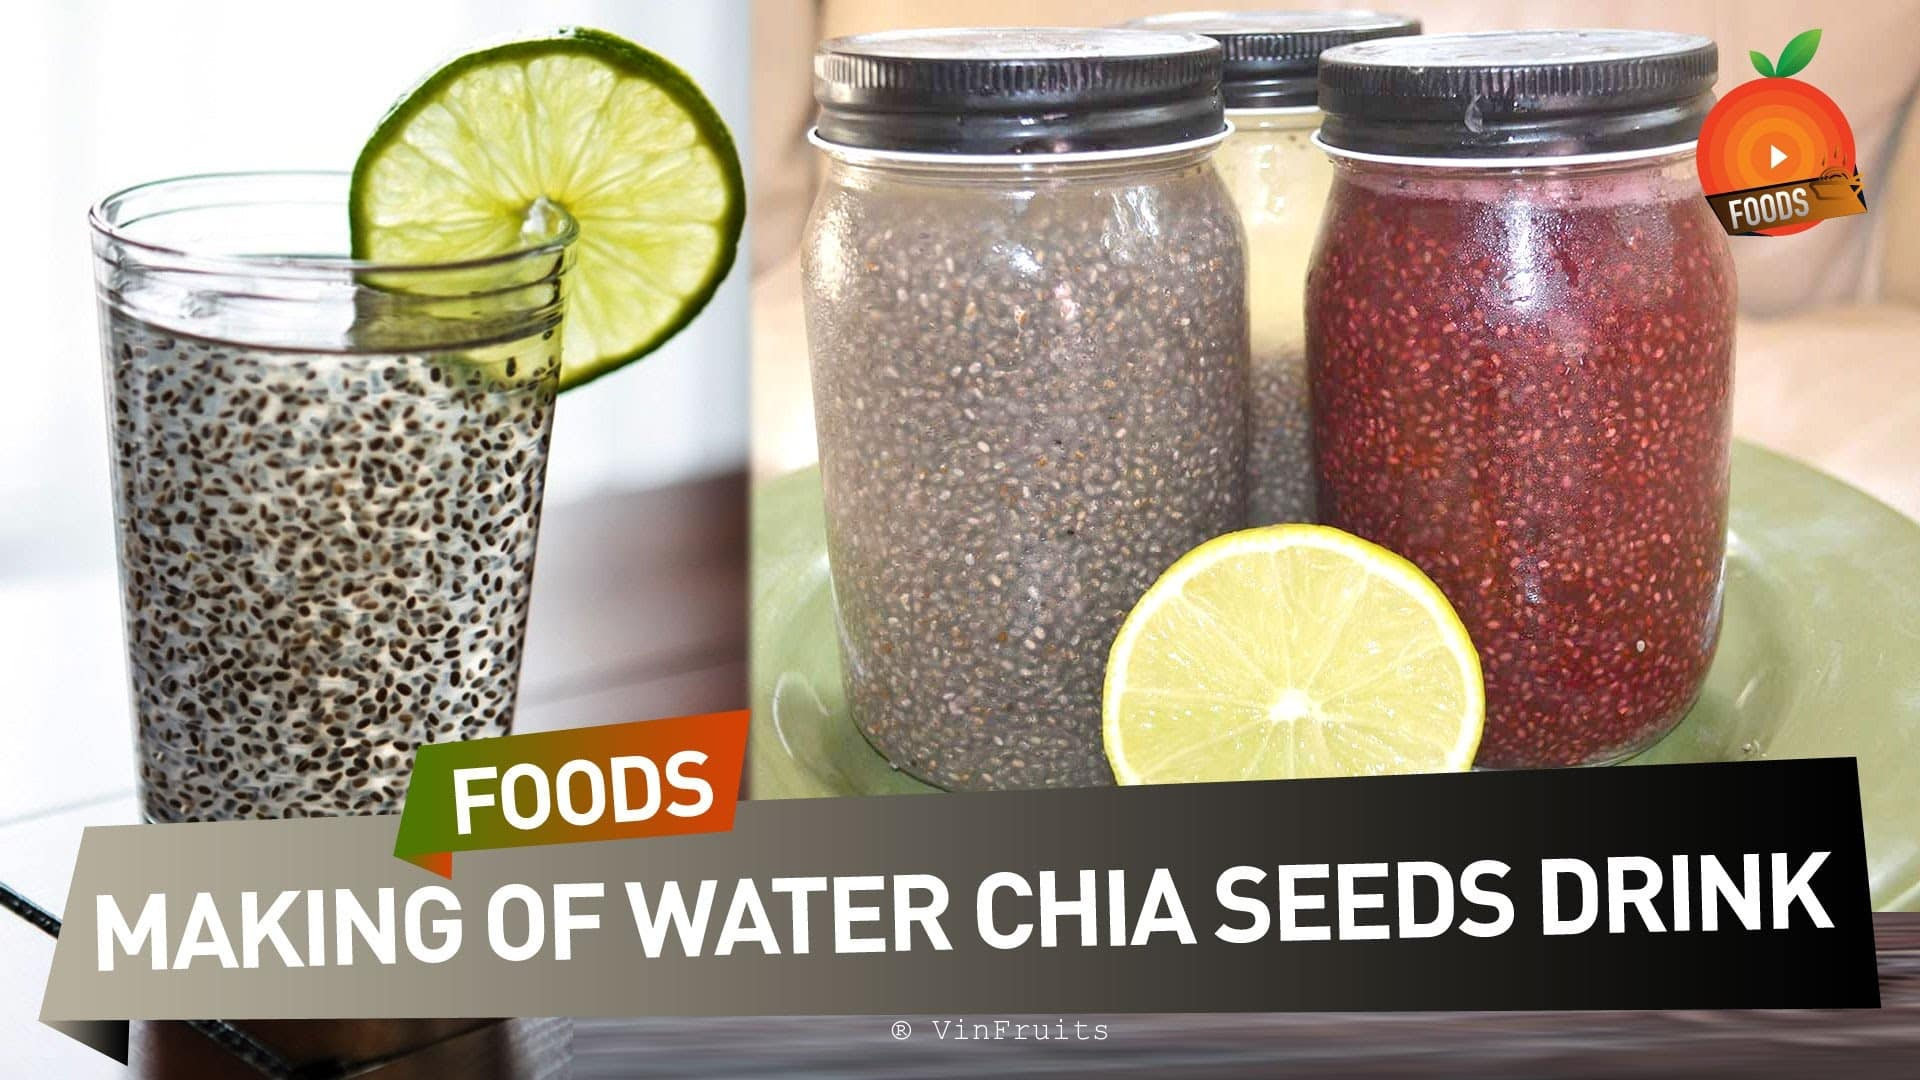 Cach uong hat chia dung cach - Vinfruits